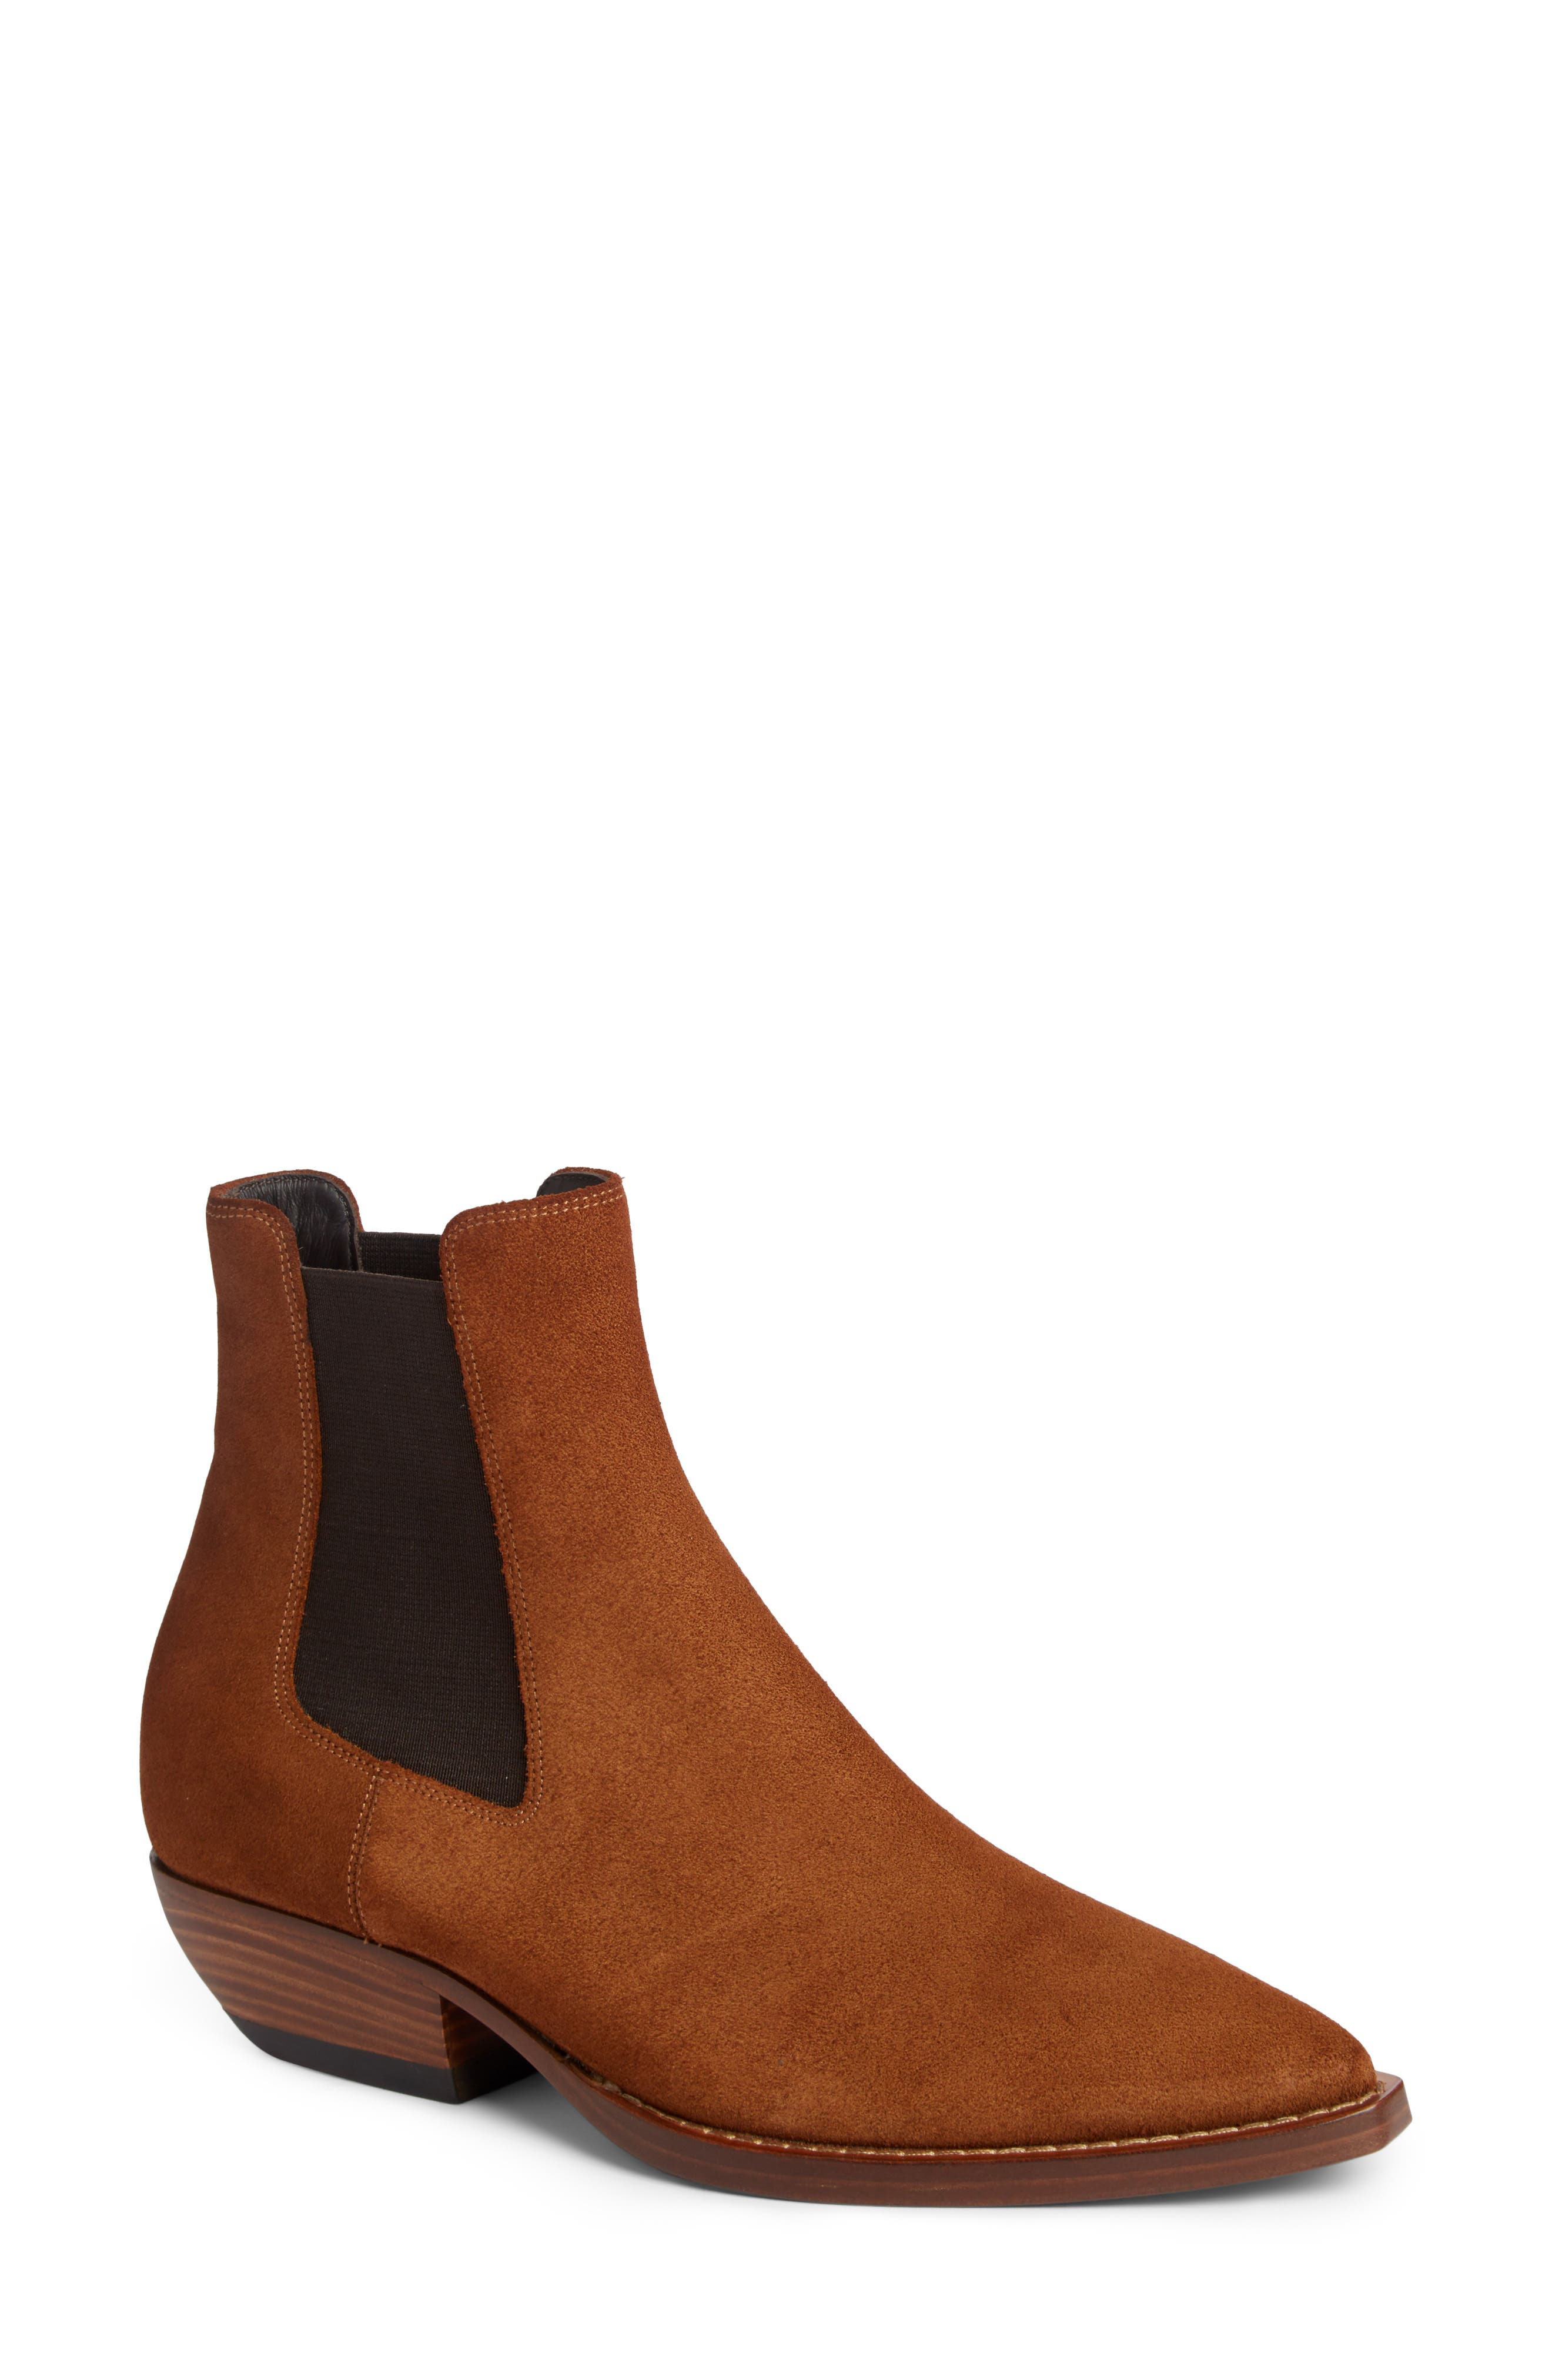 Theo Boot,                             Main thumbnail 1, color,                             Land Suede